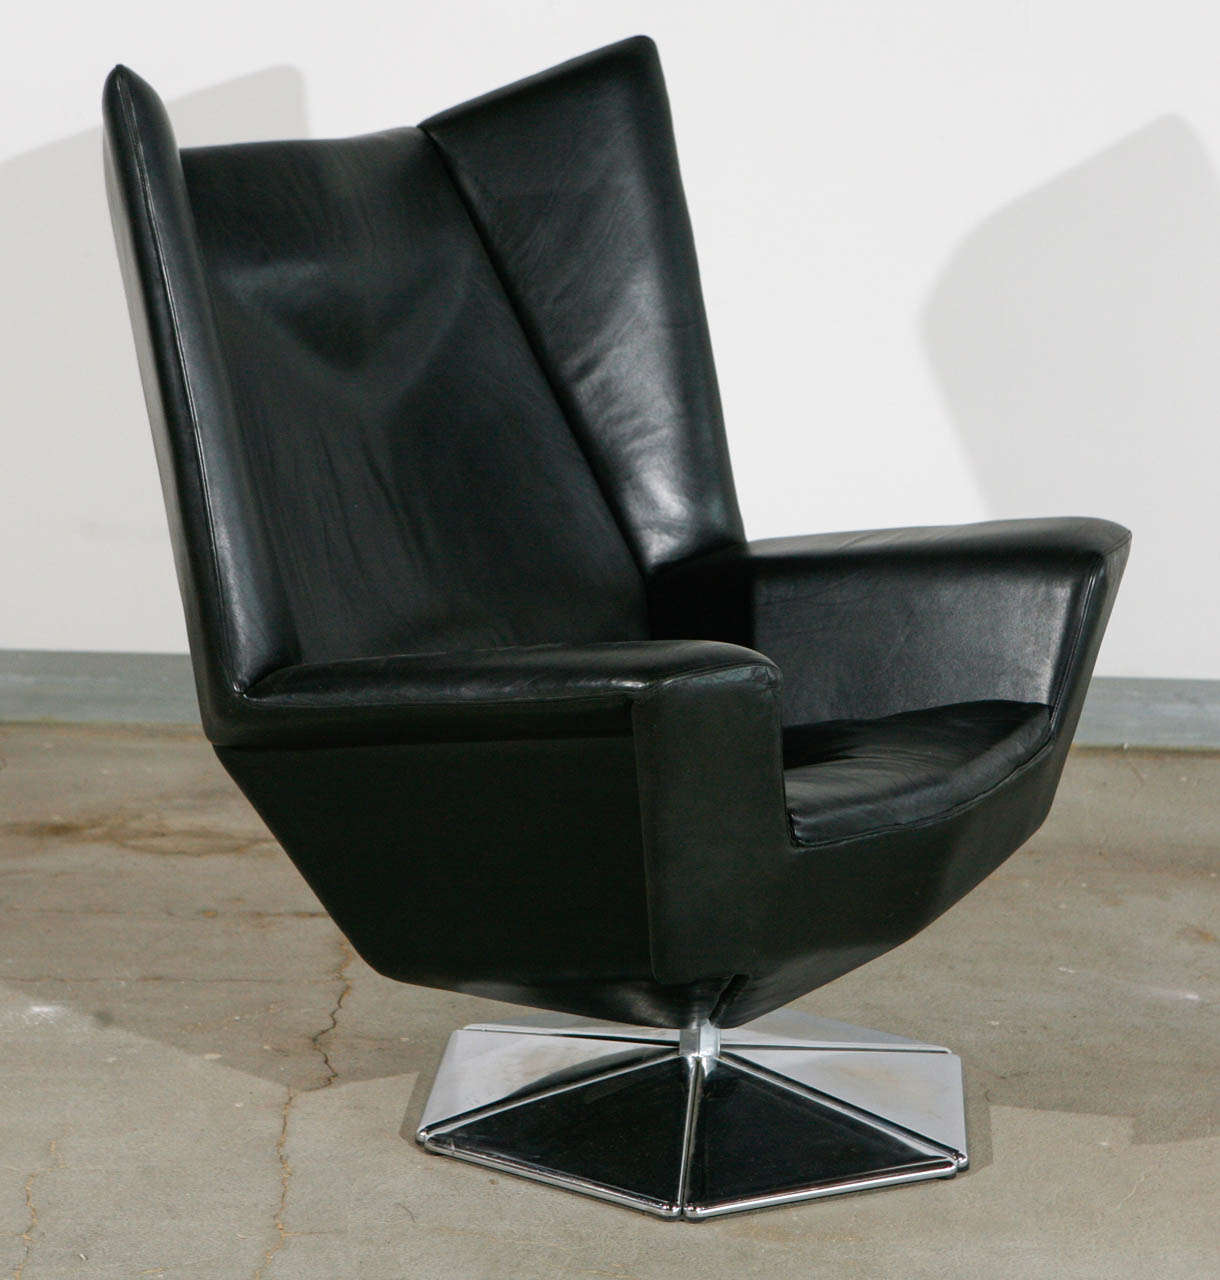 Prisma Chair by Voitto Haapalainen at 1stdibs